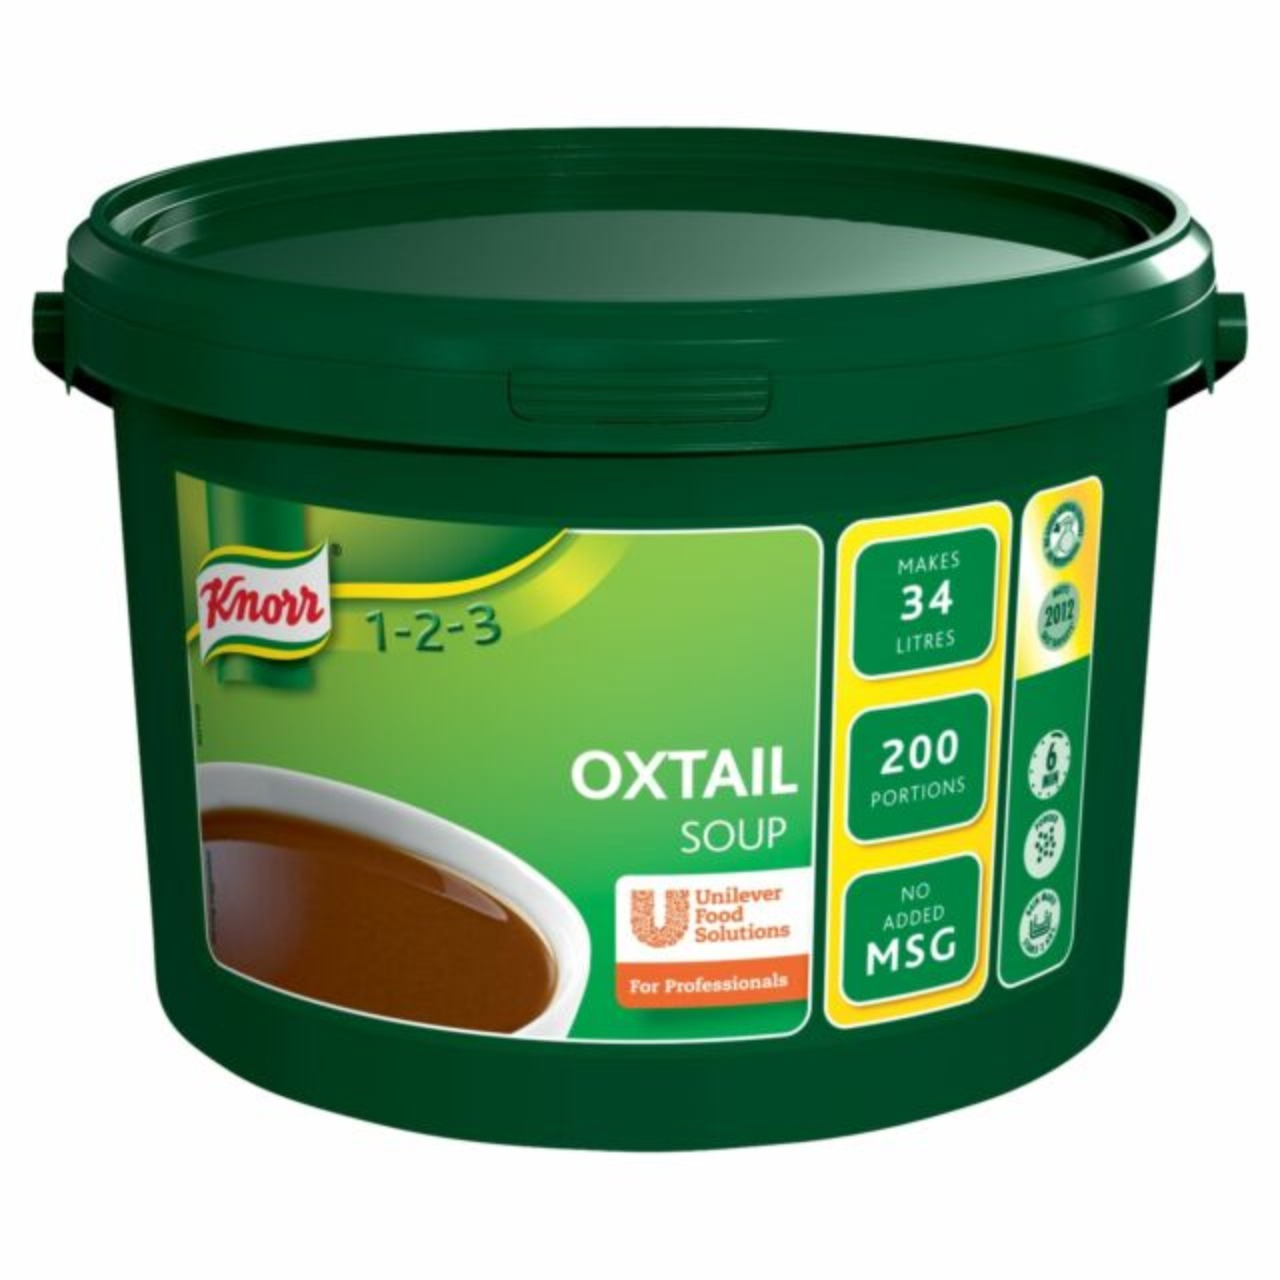 Knorr Oxtail Soup Mix 1x200ptn